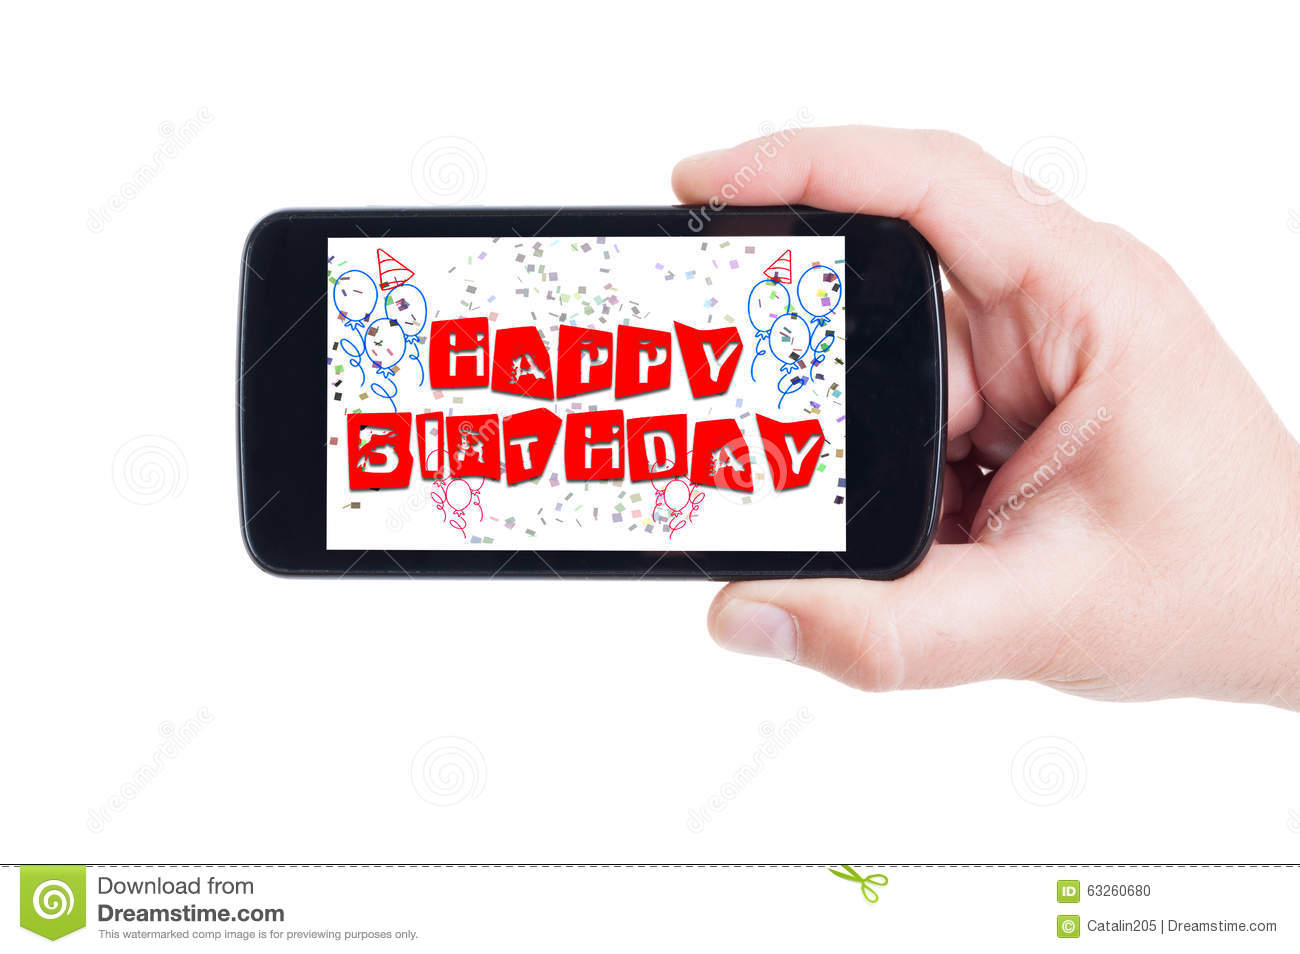 happy birthday picture messages mobile ; happy-birthday-concept-smartphone-display-phone-screen-63260680